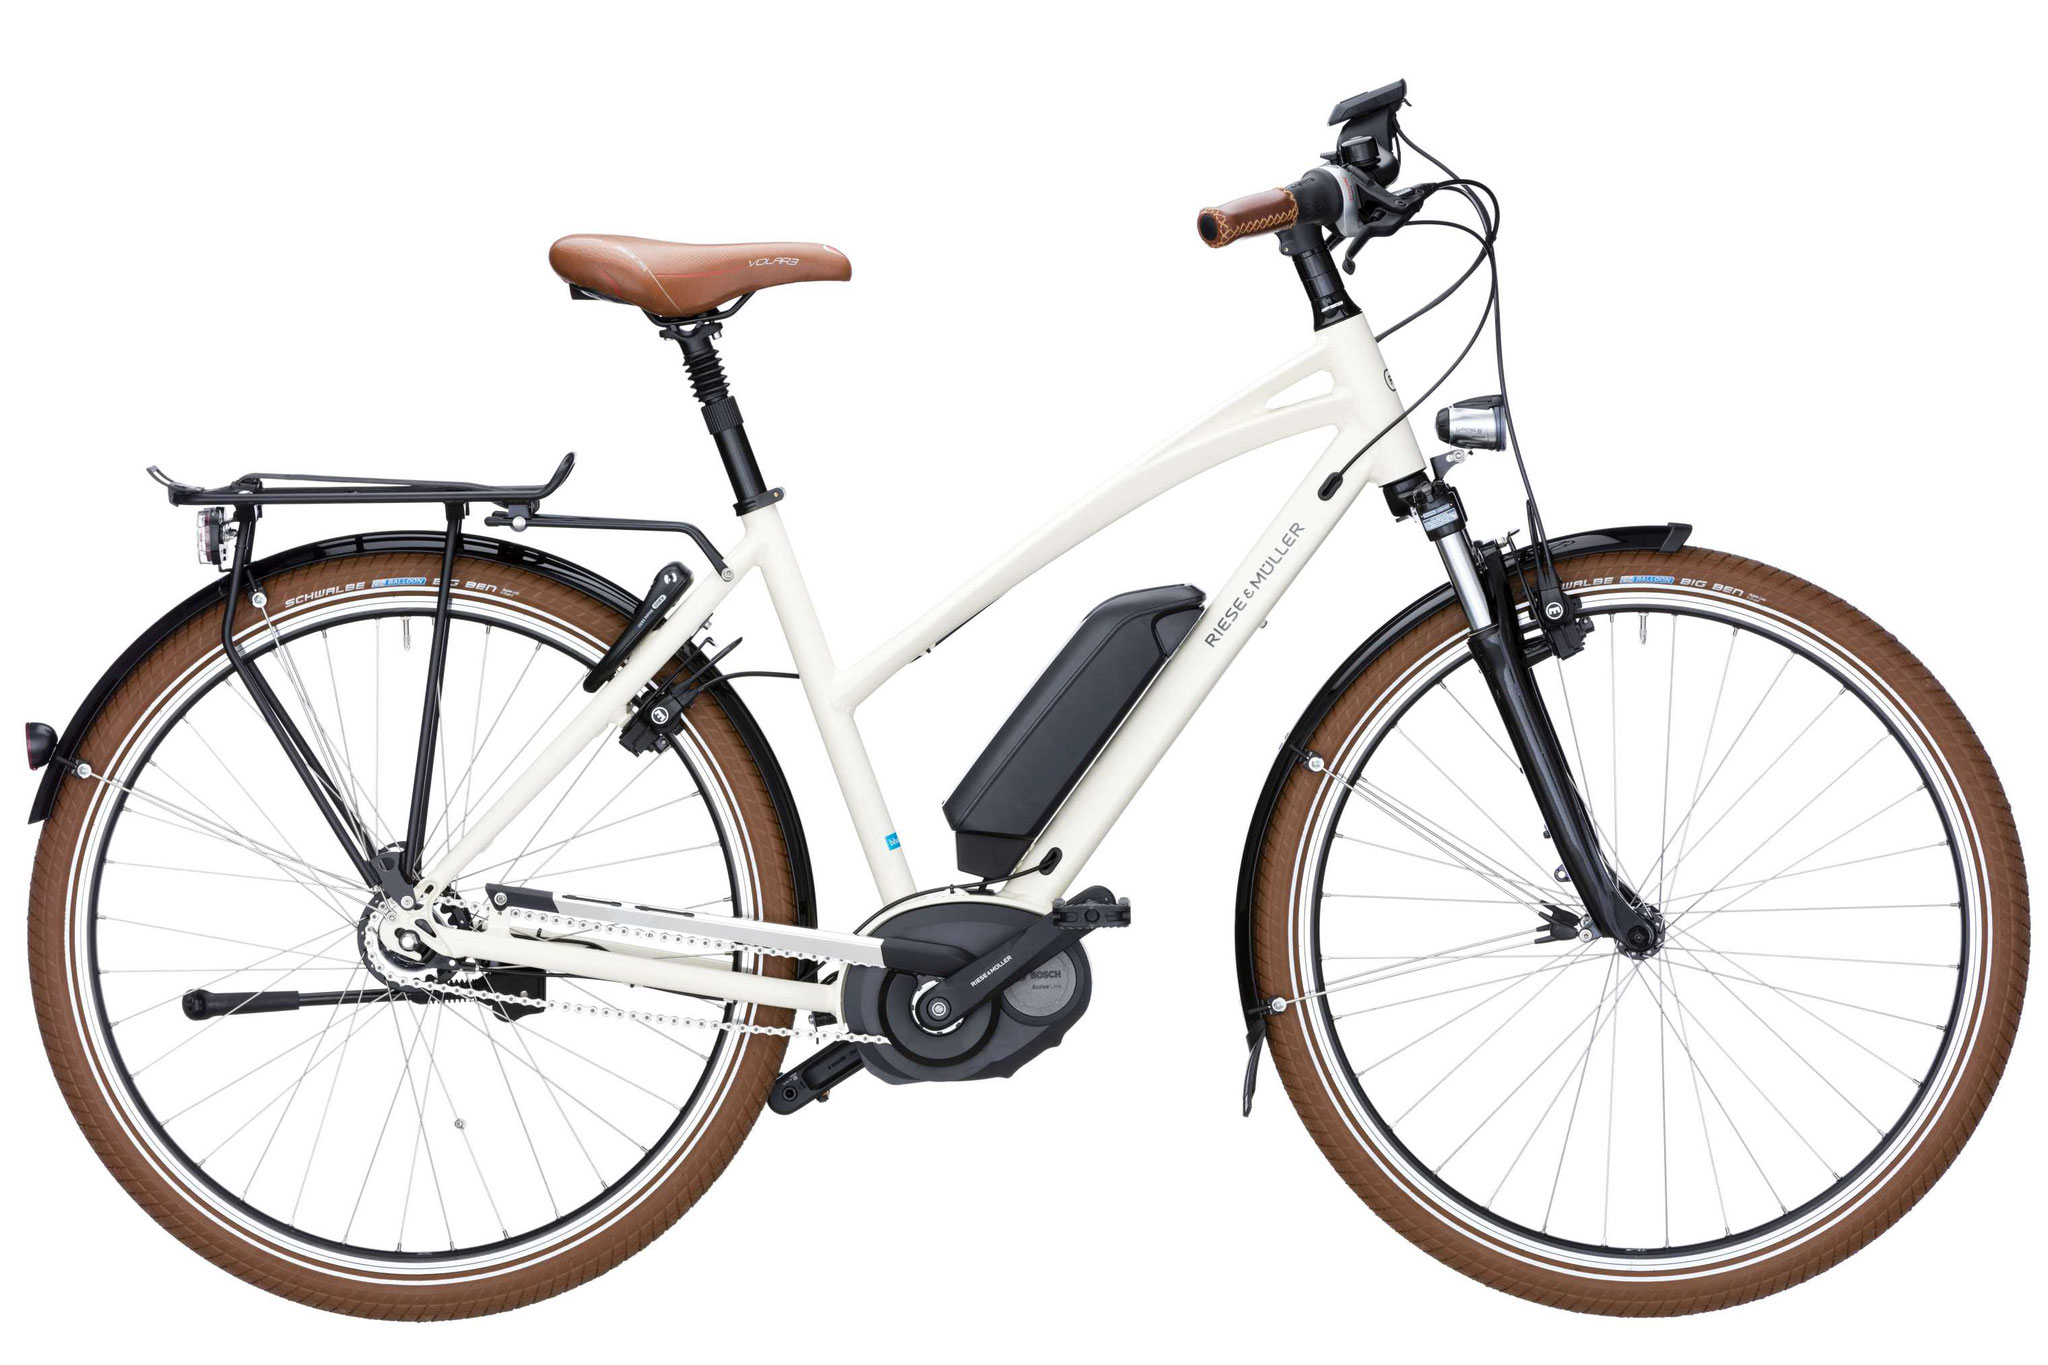 Riese & Müller Cruiser Mixte nuvinci / Cruiser Mixte nuvinci HS 2018 - creme